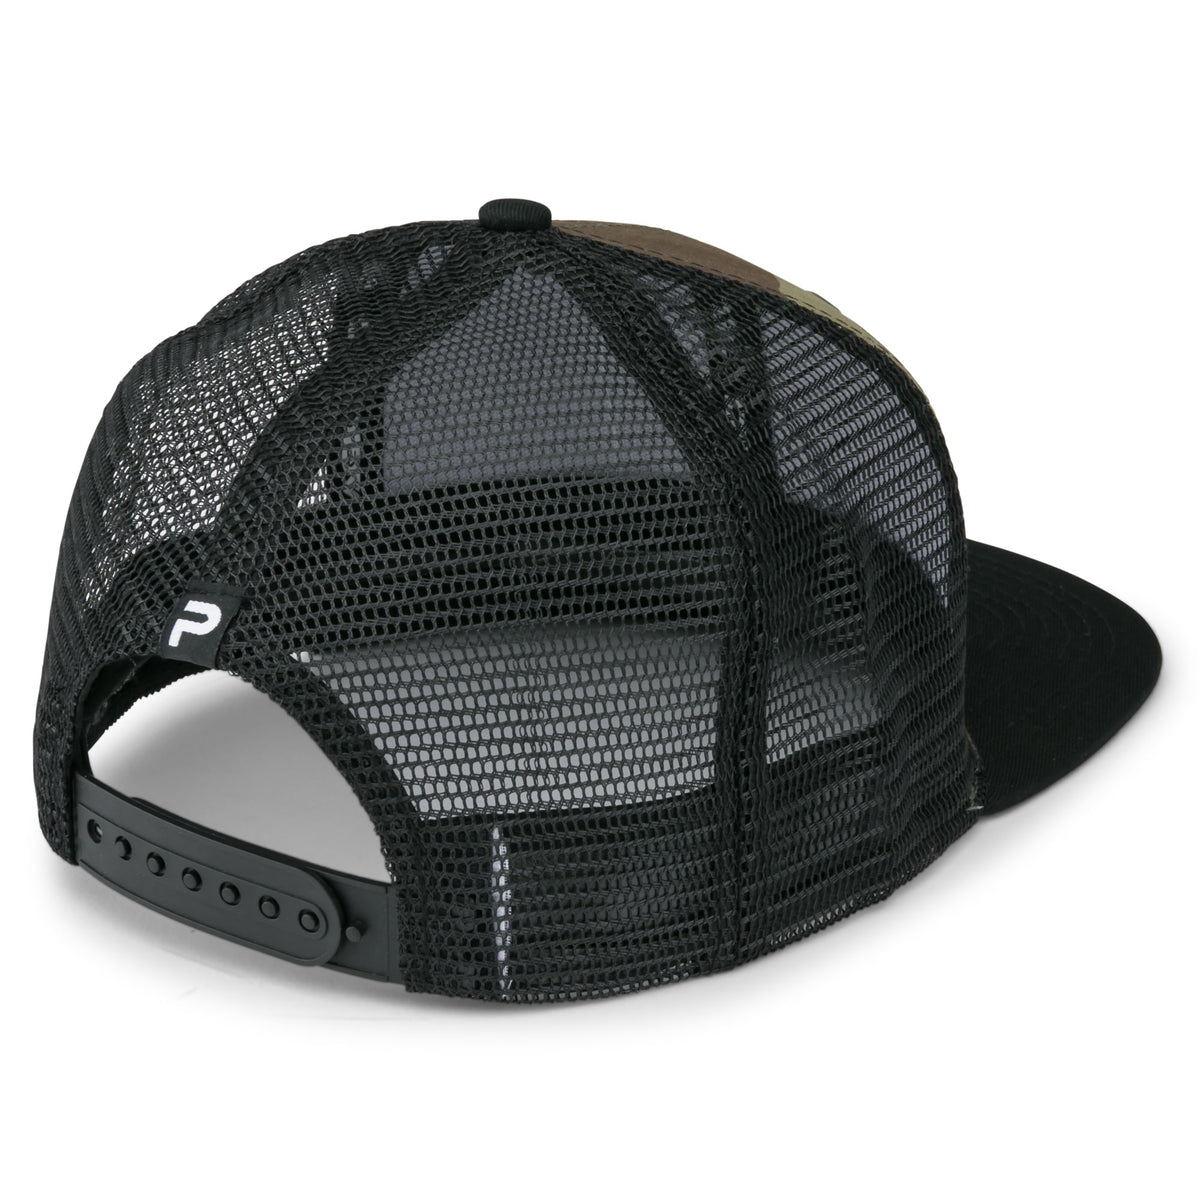 Sailfish Republic Snapback Fishing Hat Big Image - 3